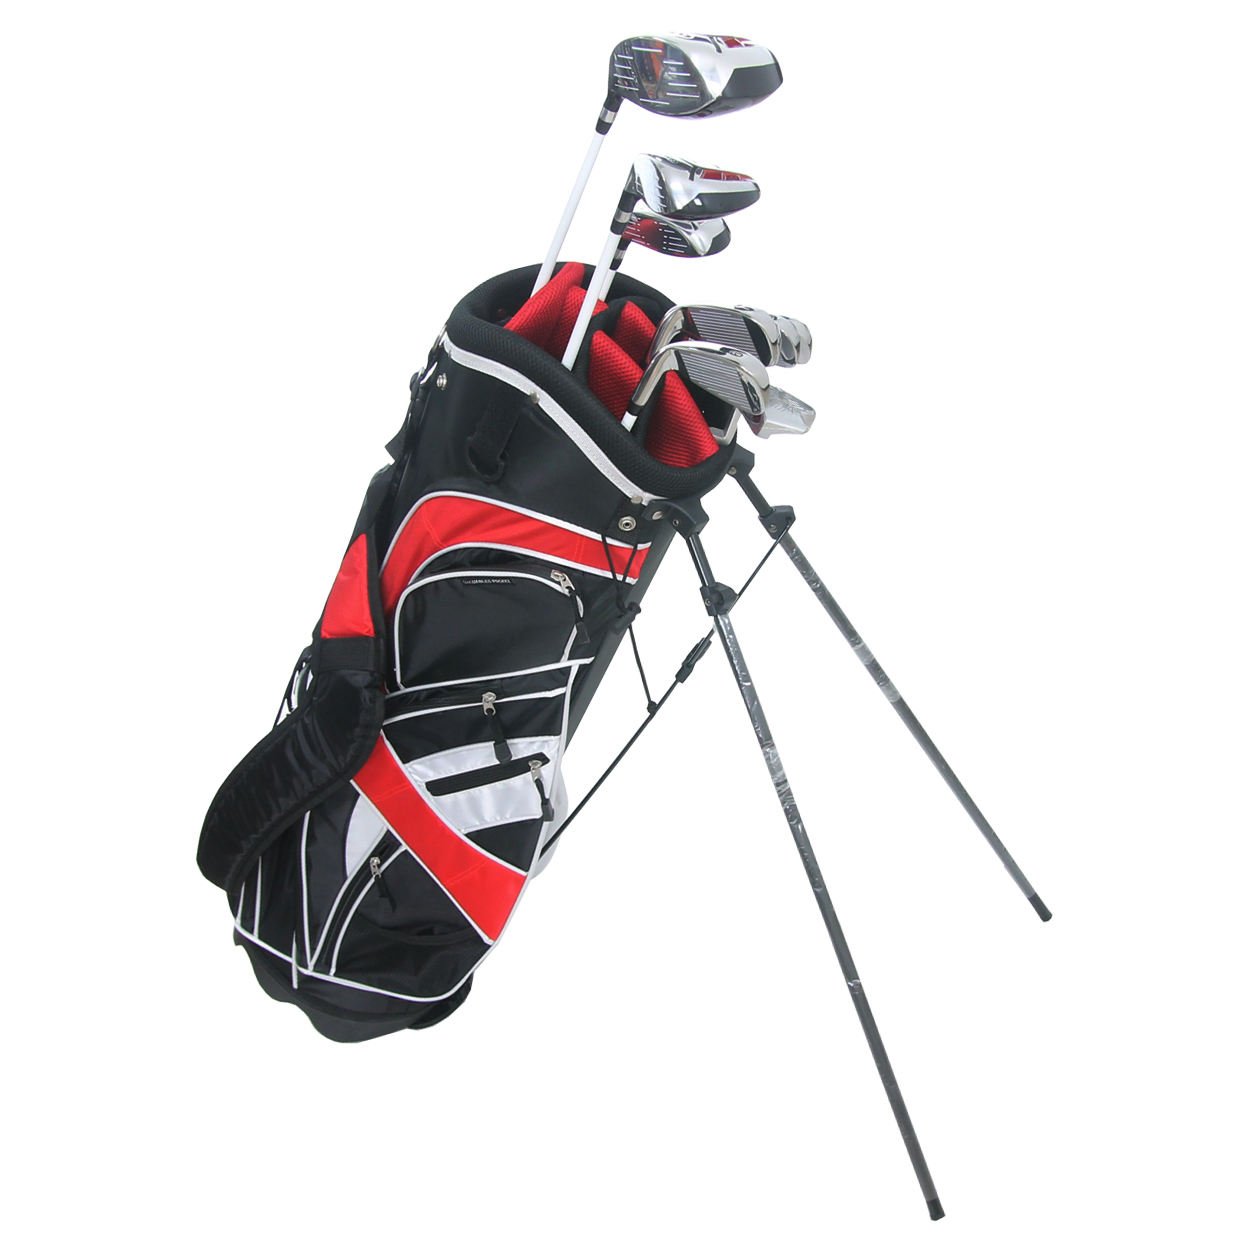 Precise GT-R 13 Piece Women's Complete Golf Set, Stand Bag Included! -